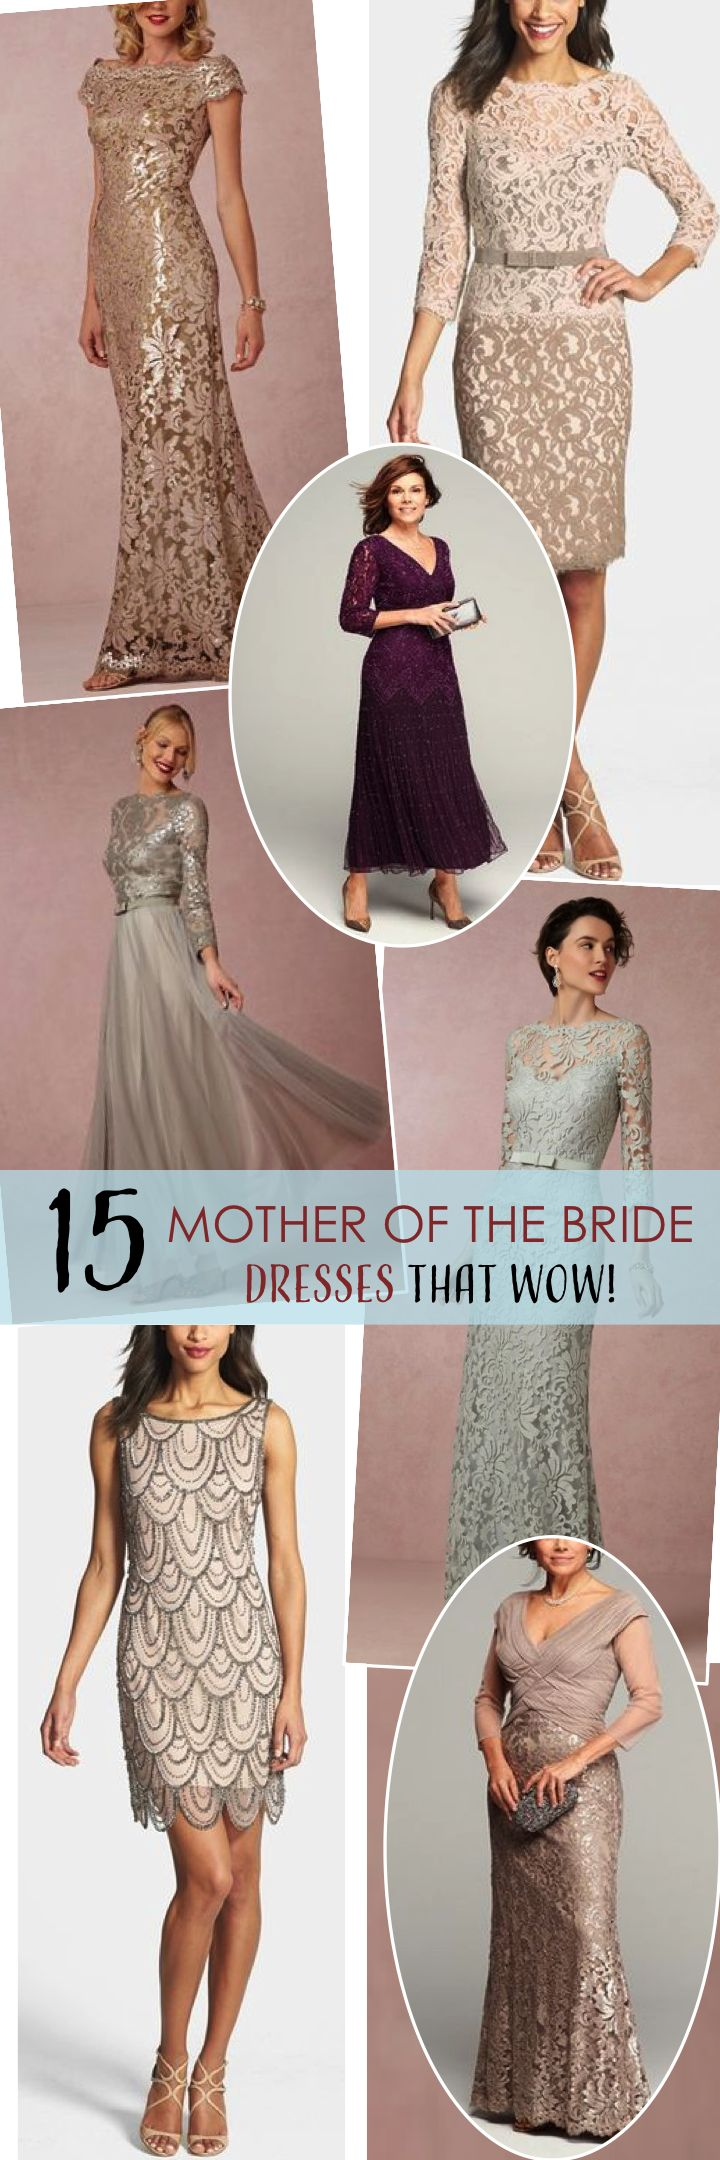 15 Mother Of The Bride Dresses That Wow